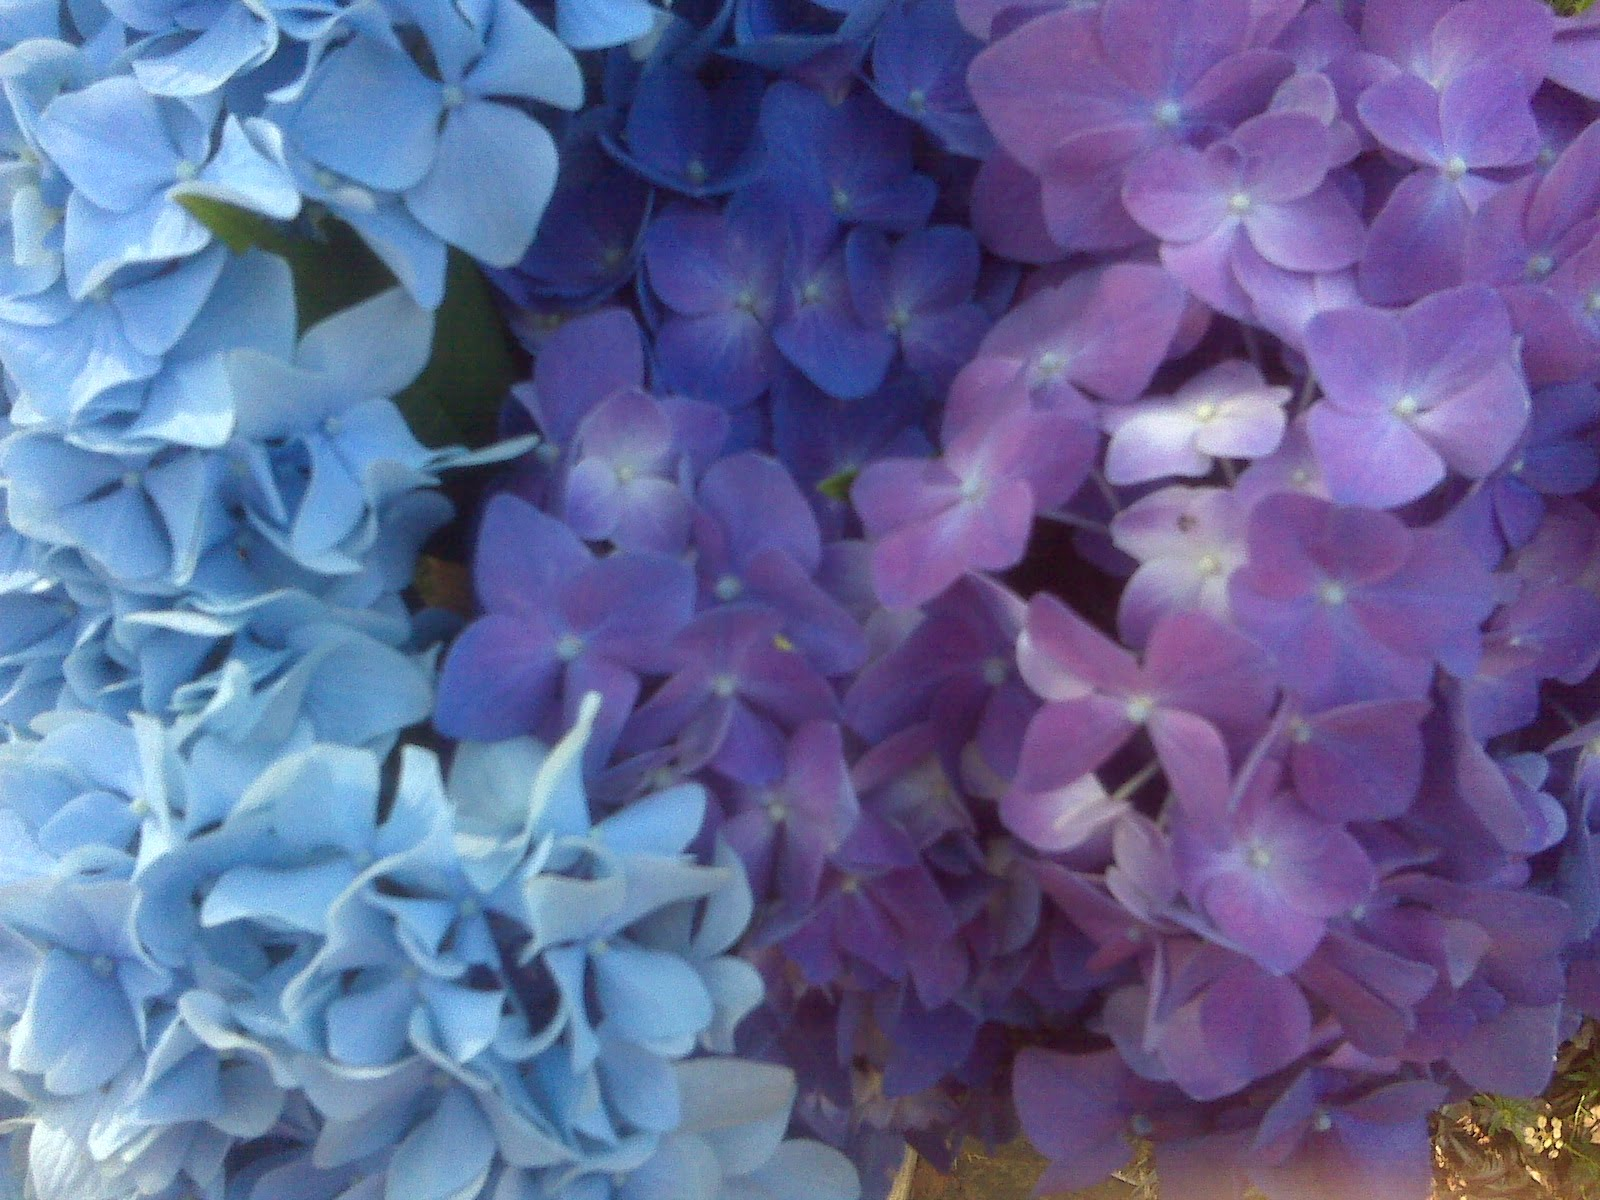 Still thinking on wedding flowers missesawesome hydrangeas come in both purple and blue and are much less expensive than peoniesey are very plush looking in bouquets izmirmasajfo